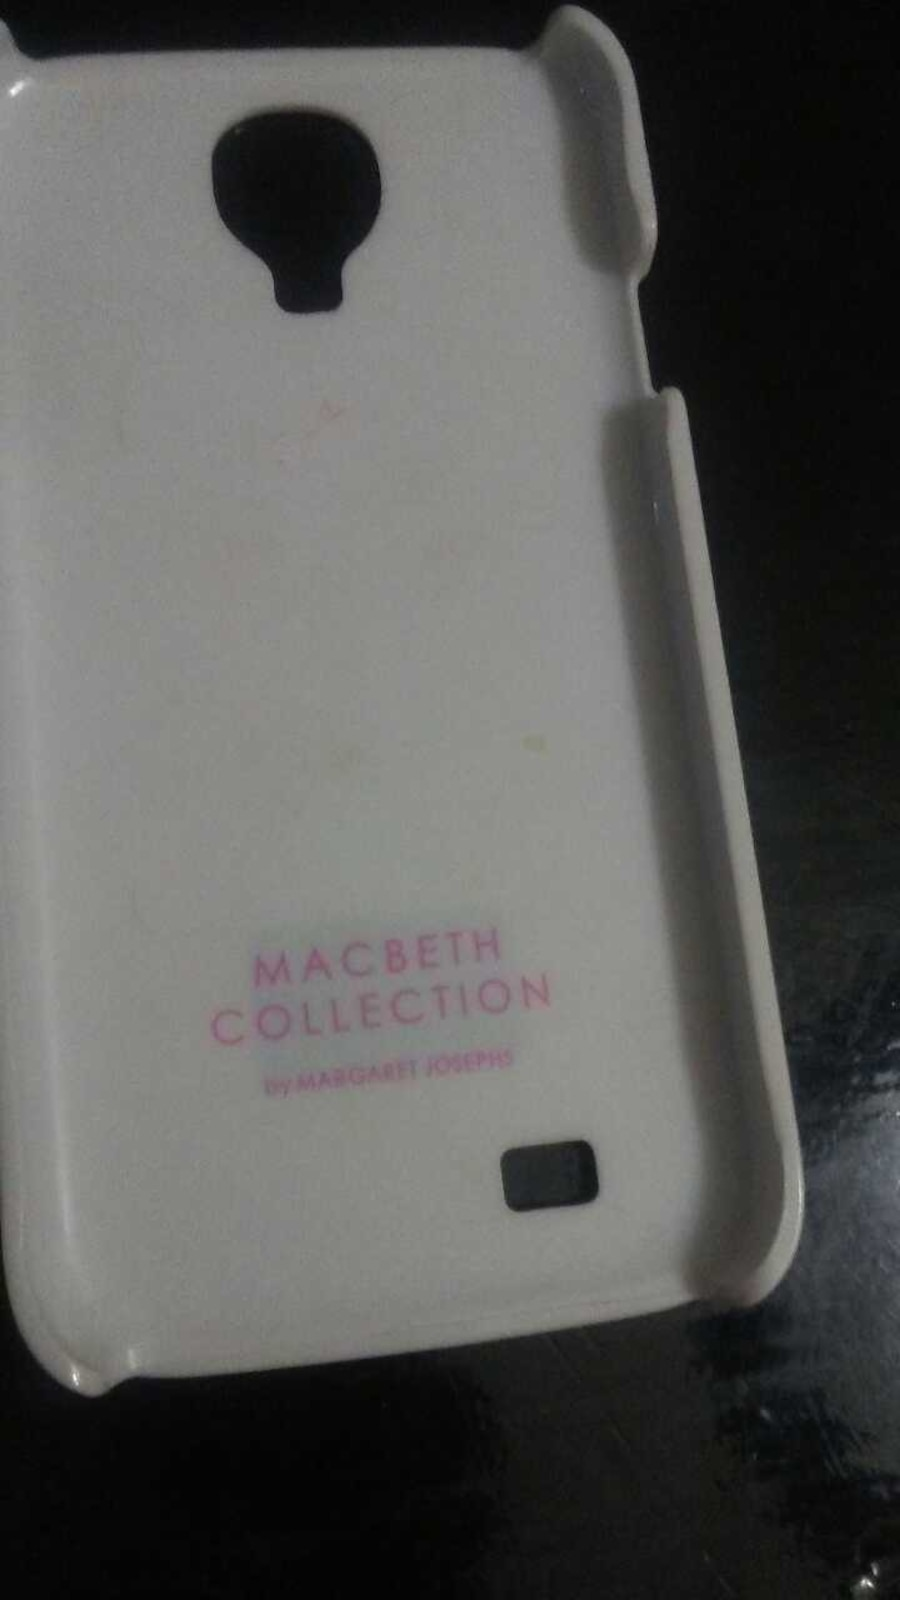 Phone cover mcbeth collection - Warr Acres